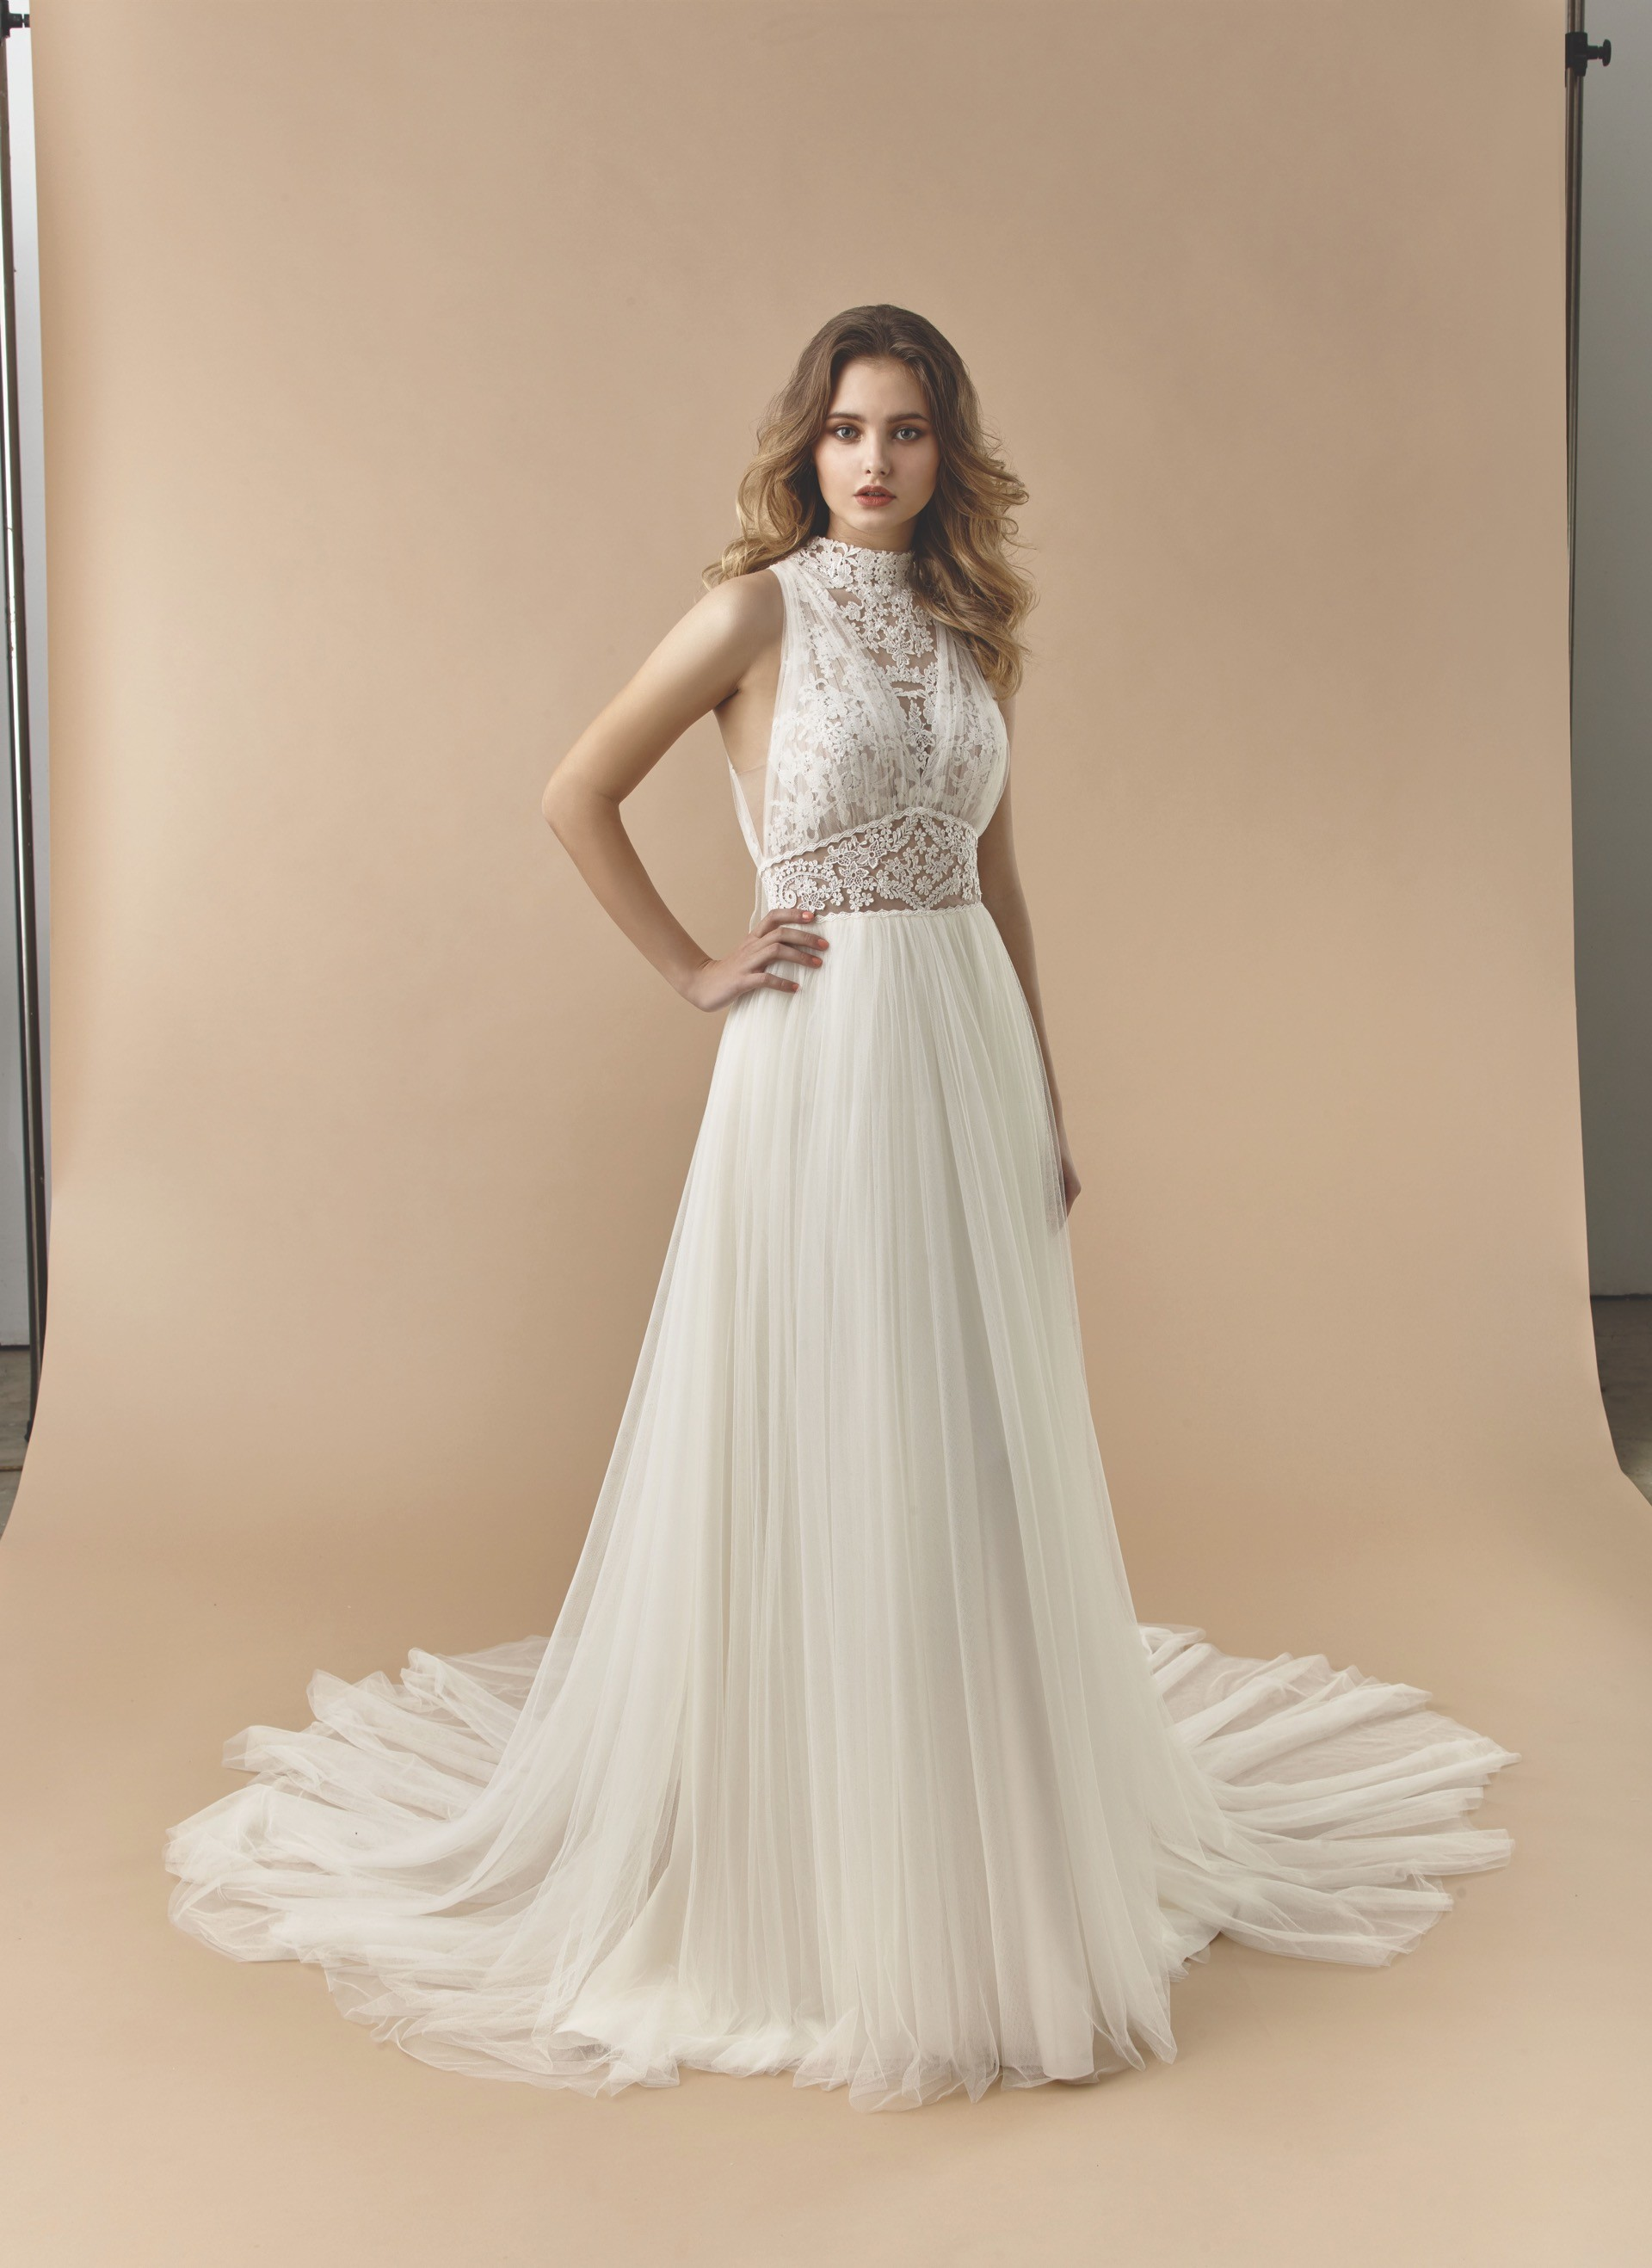 Brautkleid Modell BT 20-4 aus der Beautiful Bridal Kollektion 2020